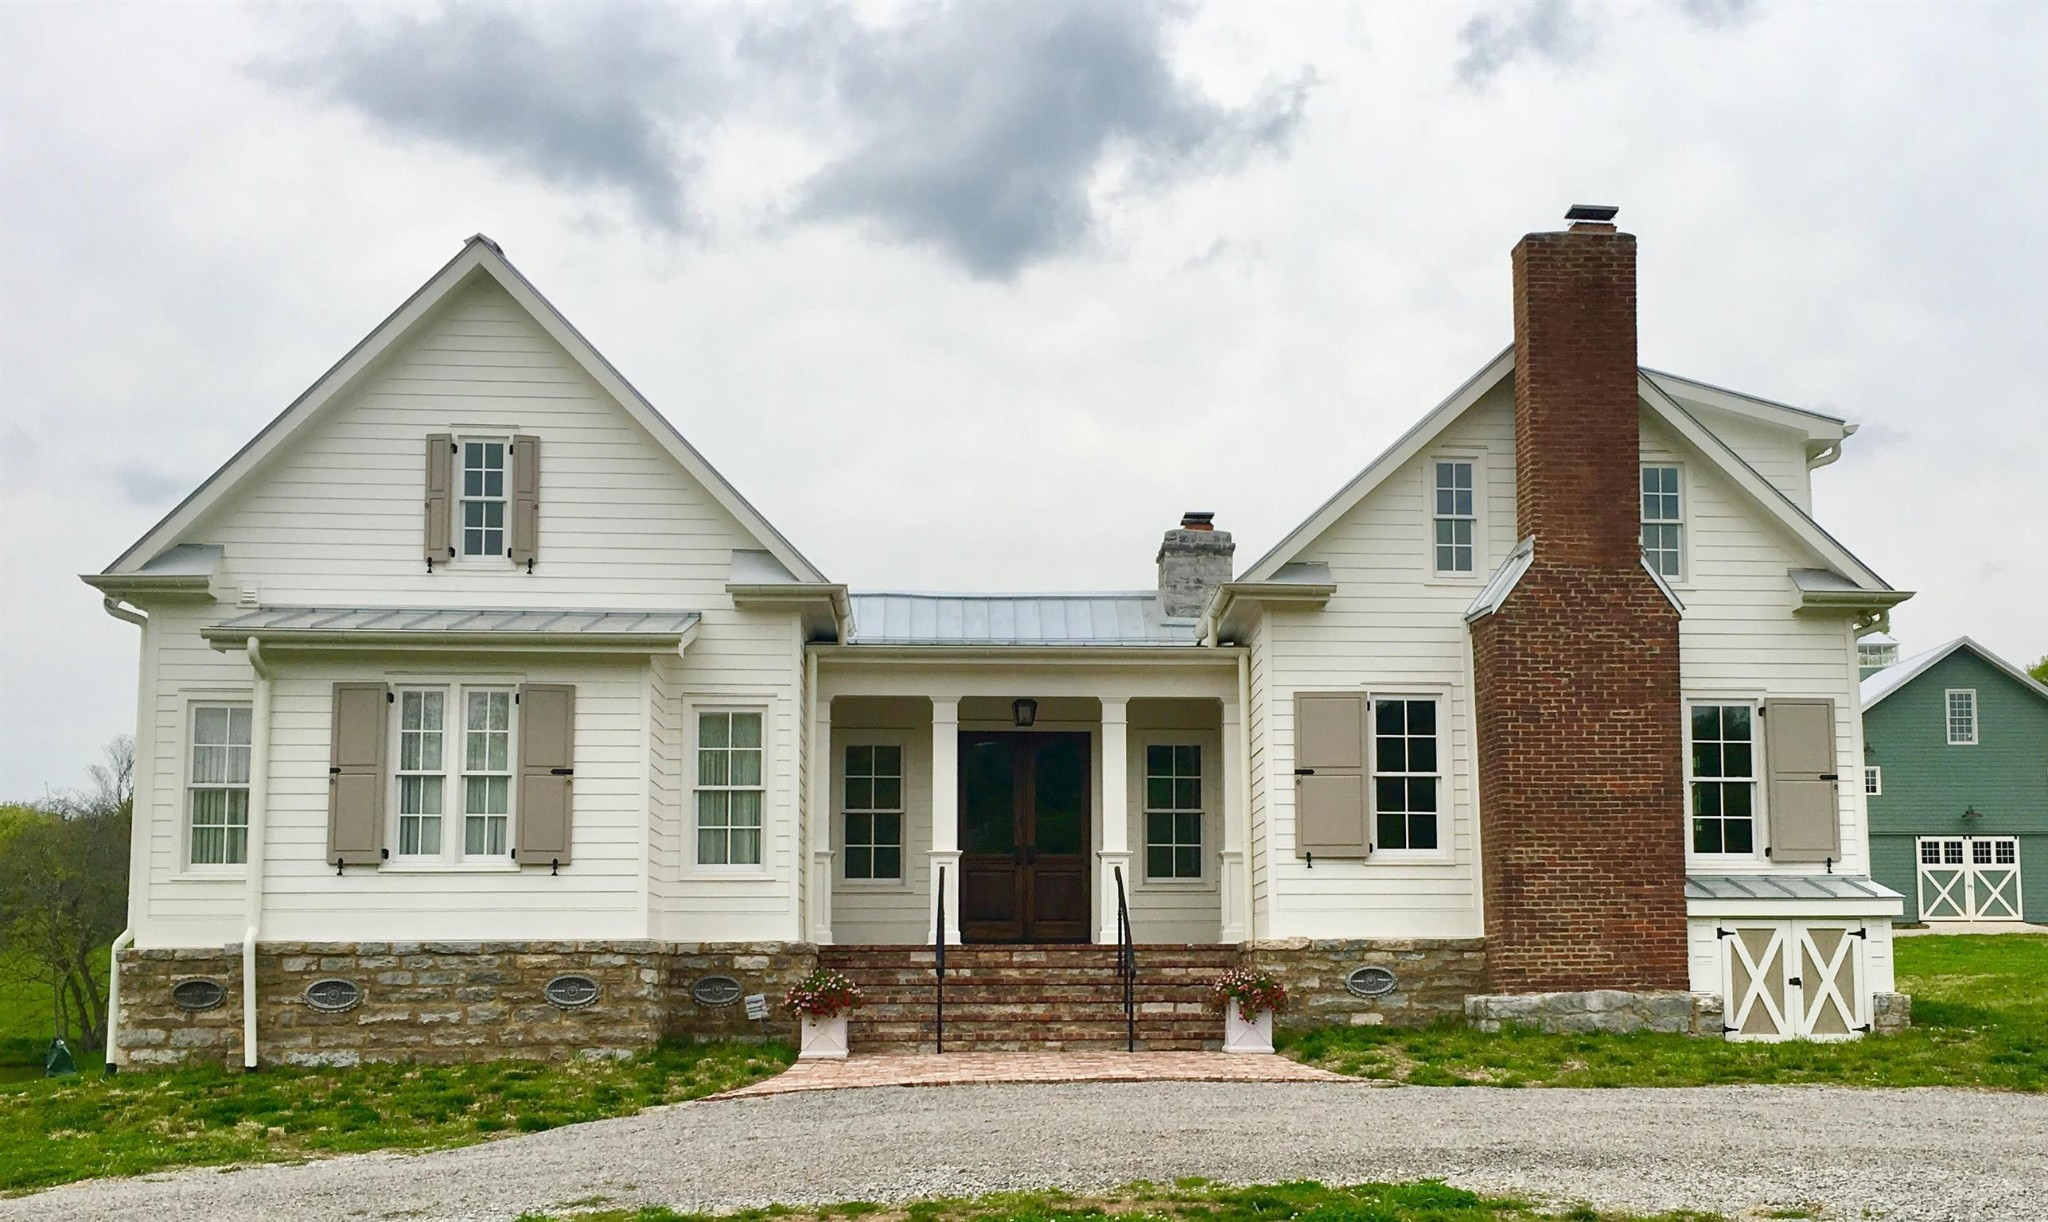 Preservation & privacy encompass the breathtaking beauty of Briarwood Farm. This enchanting story book treasure features a historical 1815 farmhouse (featured in Country Home Magazine 2019 summer/spring issue) with hand-cut limestone fireplace, original ash floors, poplar beams & walls. Additionally included is an early 1800s log cabin, event barn, lake & amazing views. Ideally situated on breathtaking 58 +- Acres of rolling pasture, woods with panoramic views. Make this unparalleled farm yours!